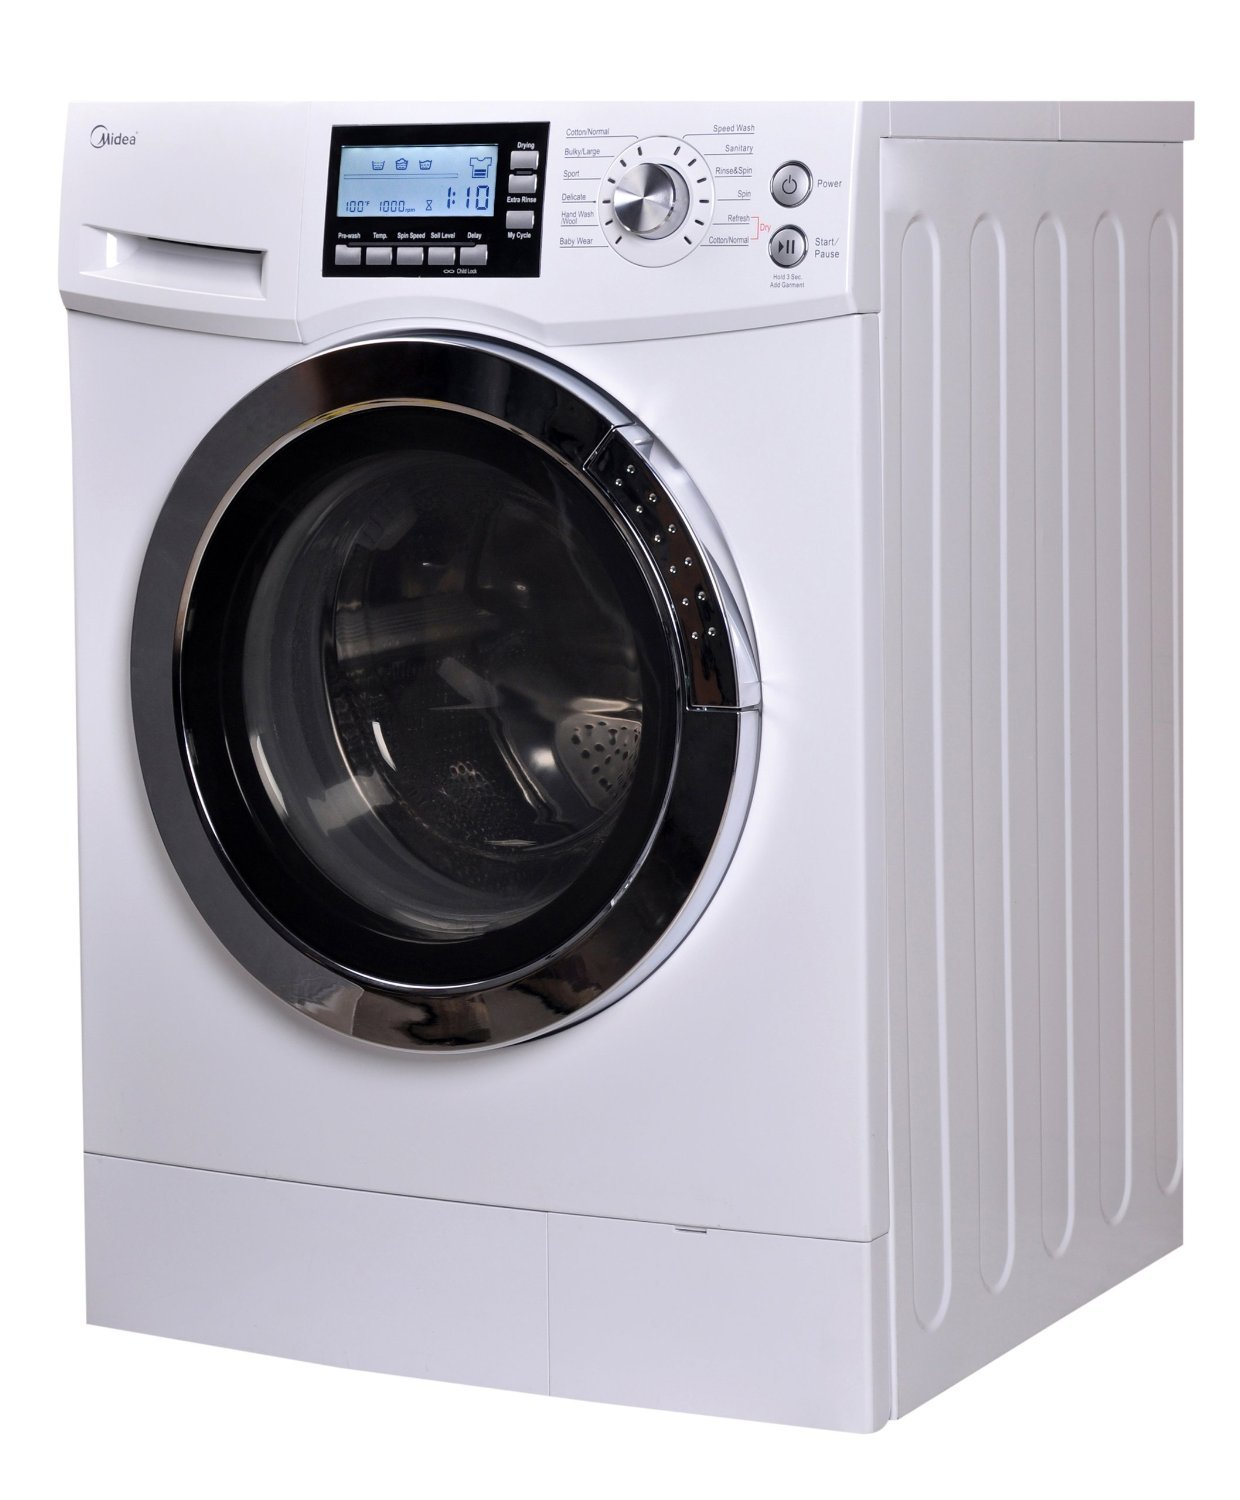 Black Friday Washer And Dryer Deals